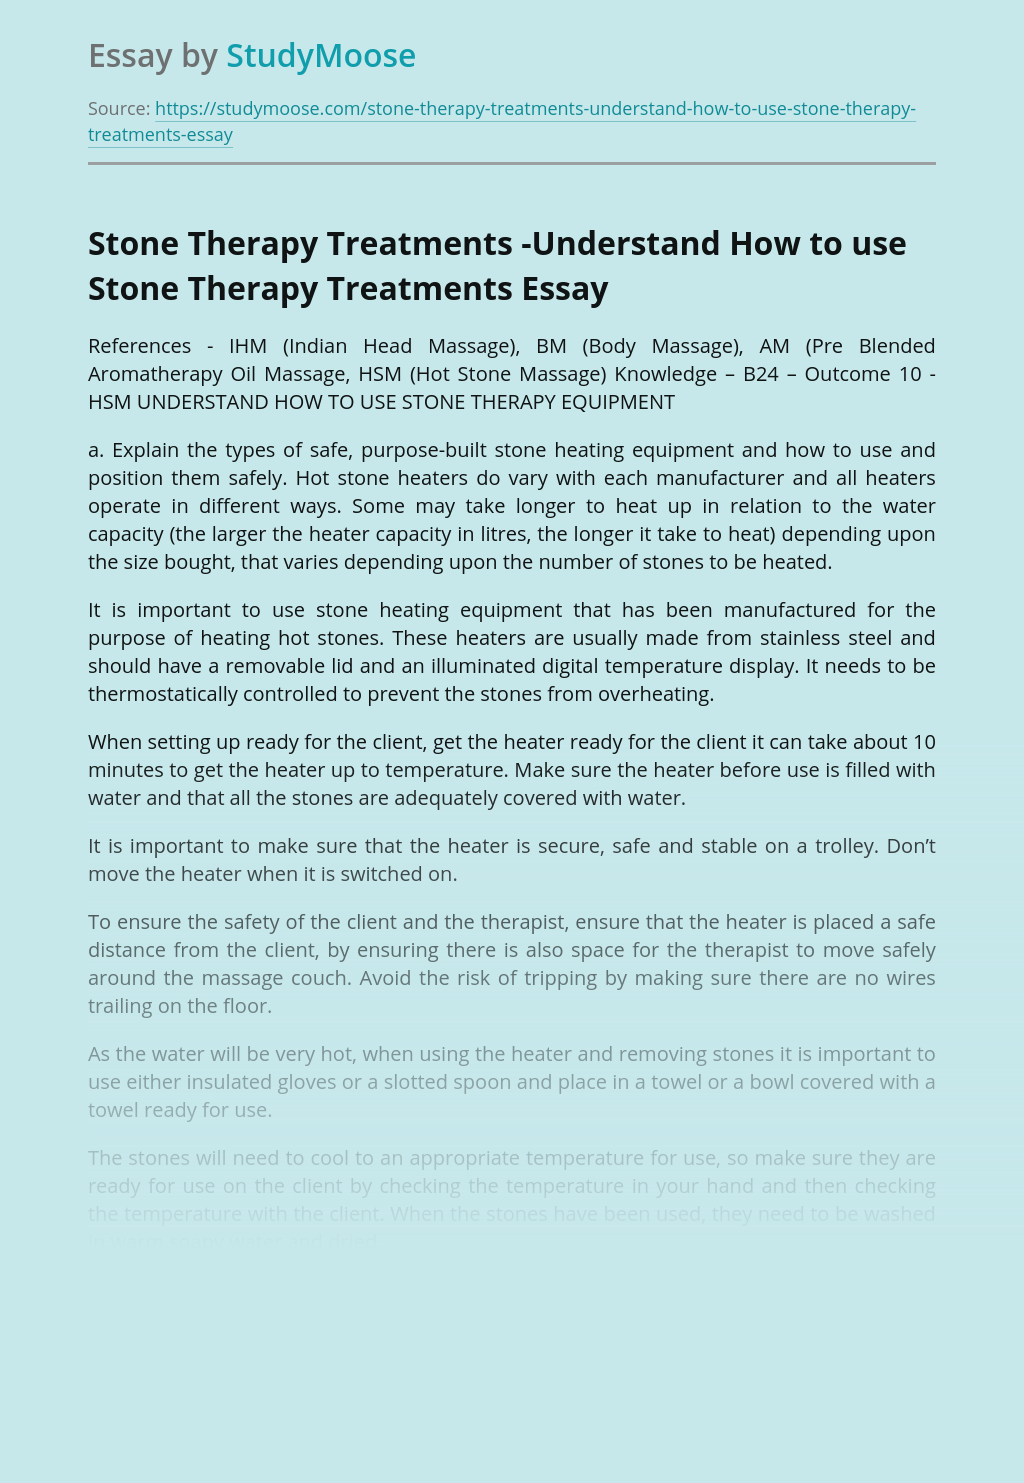 Stone Therapy Treatments -Understand How to use Stone Therapy Treatments